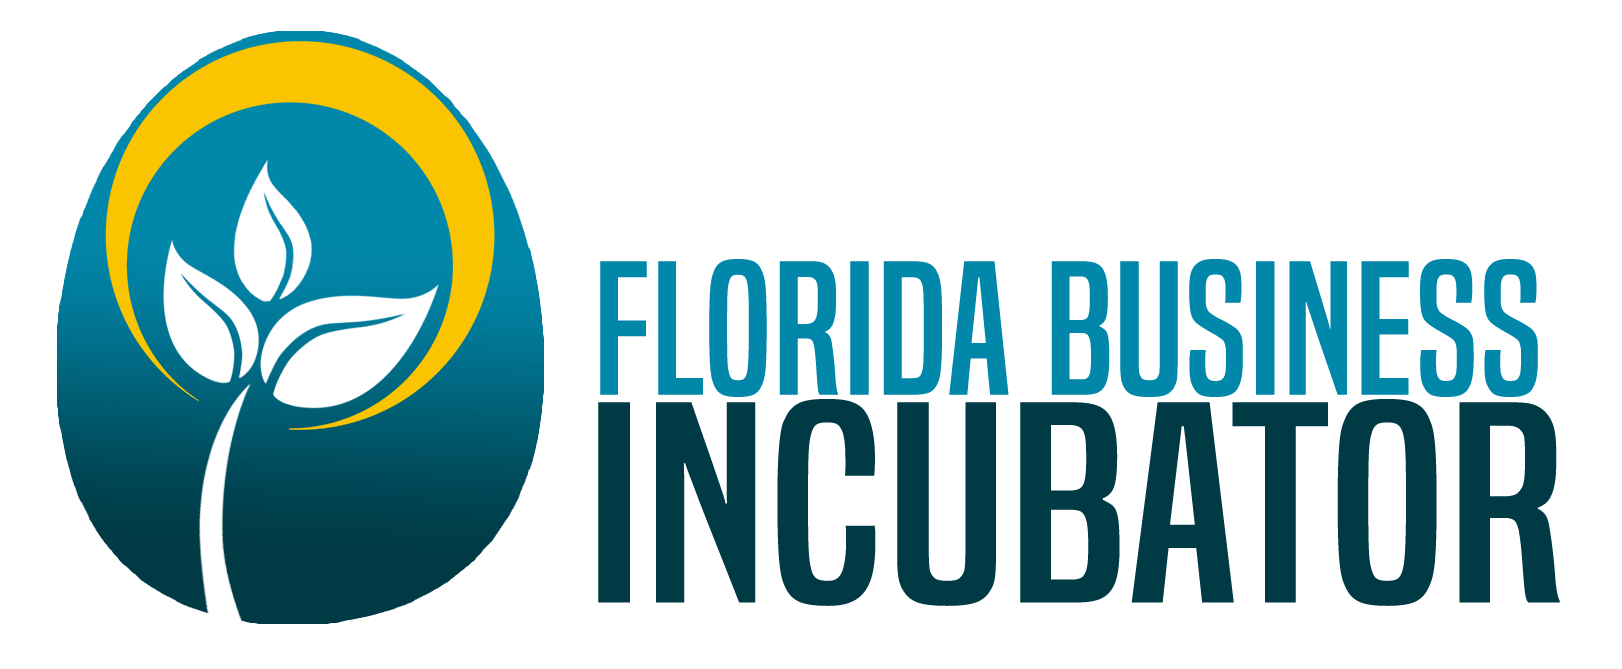 Florida Business Incubator